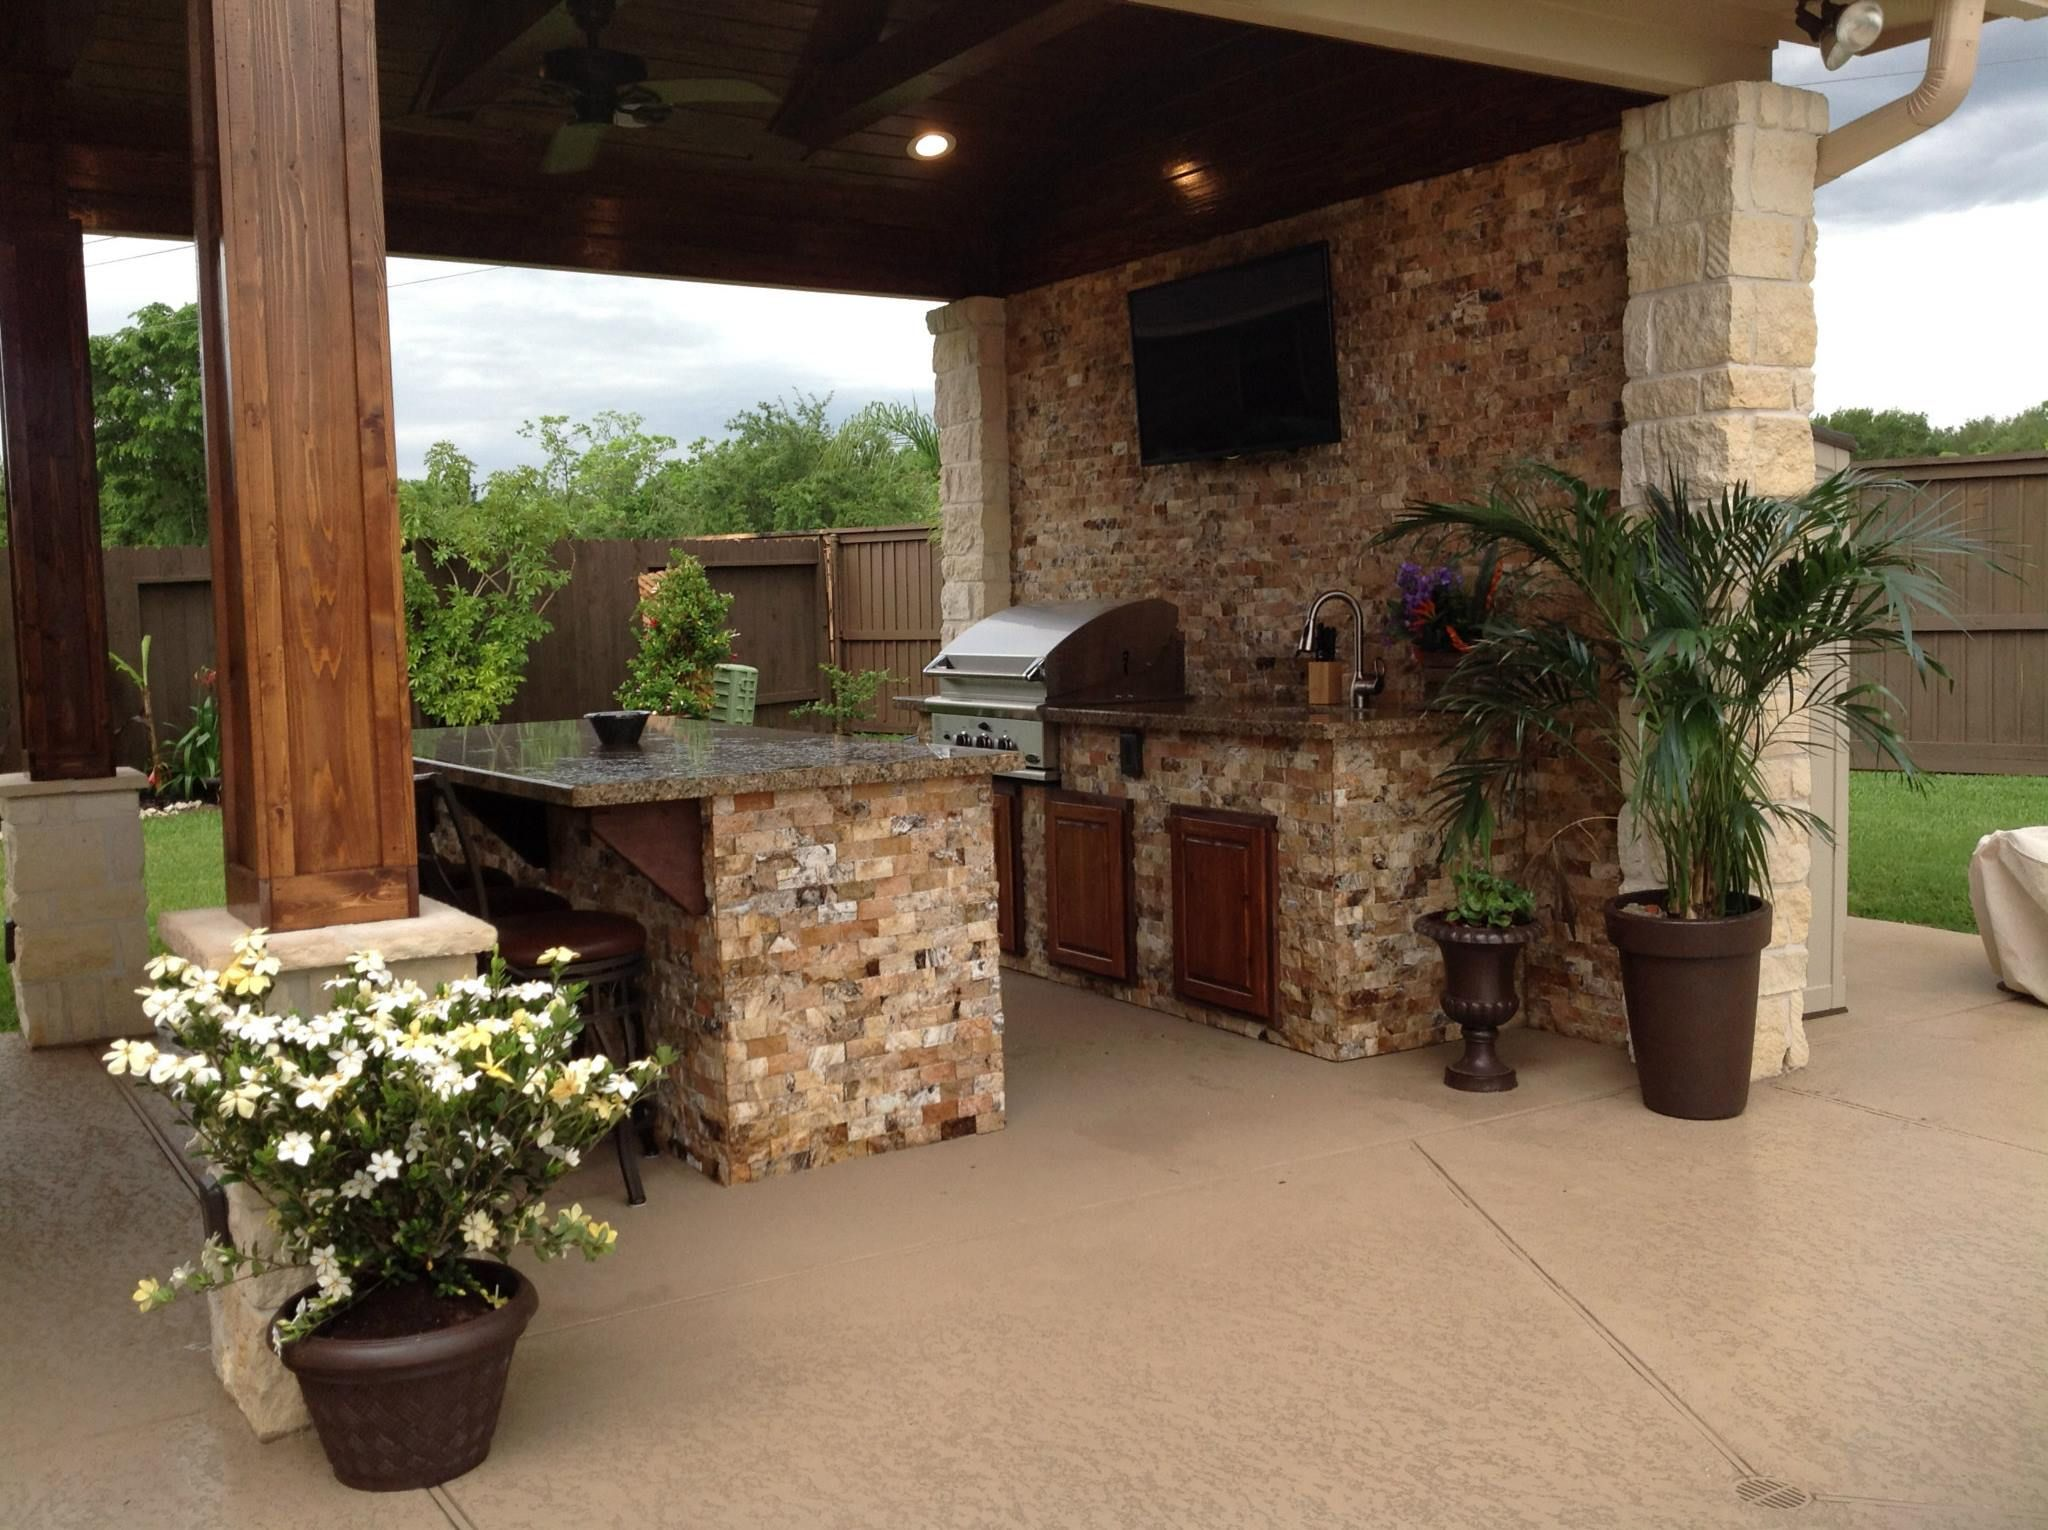 Outdoor Kitchen With Built In Grill And